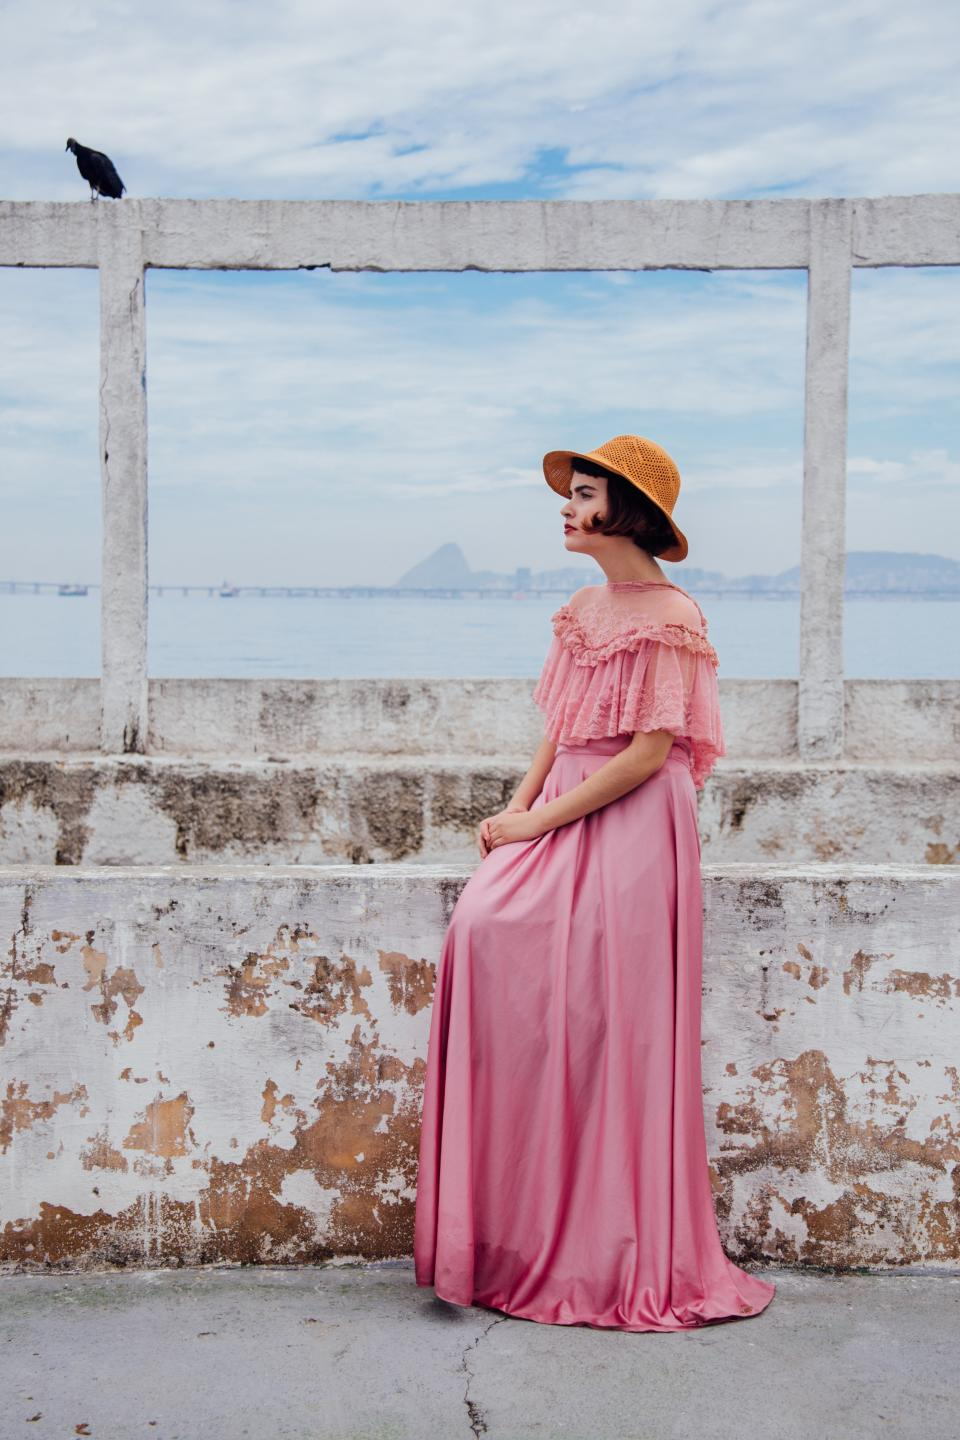 people woman fashion pink hat dress clothing wall blue sky cloud nature bid animal